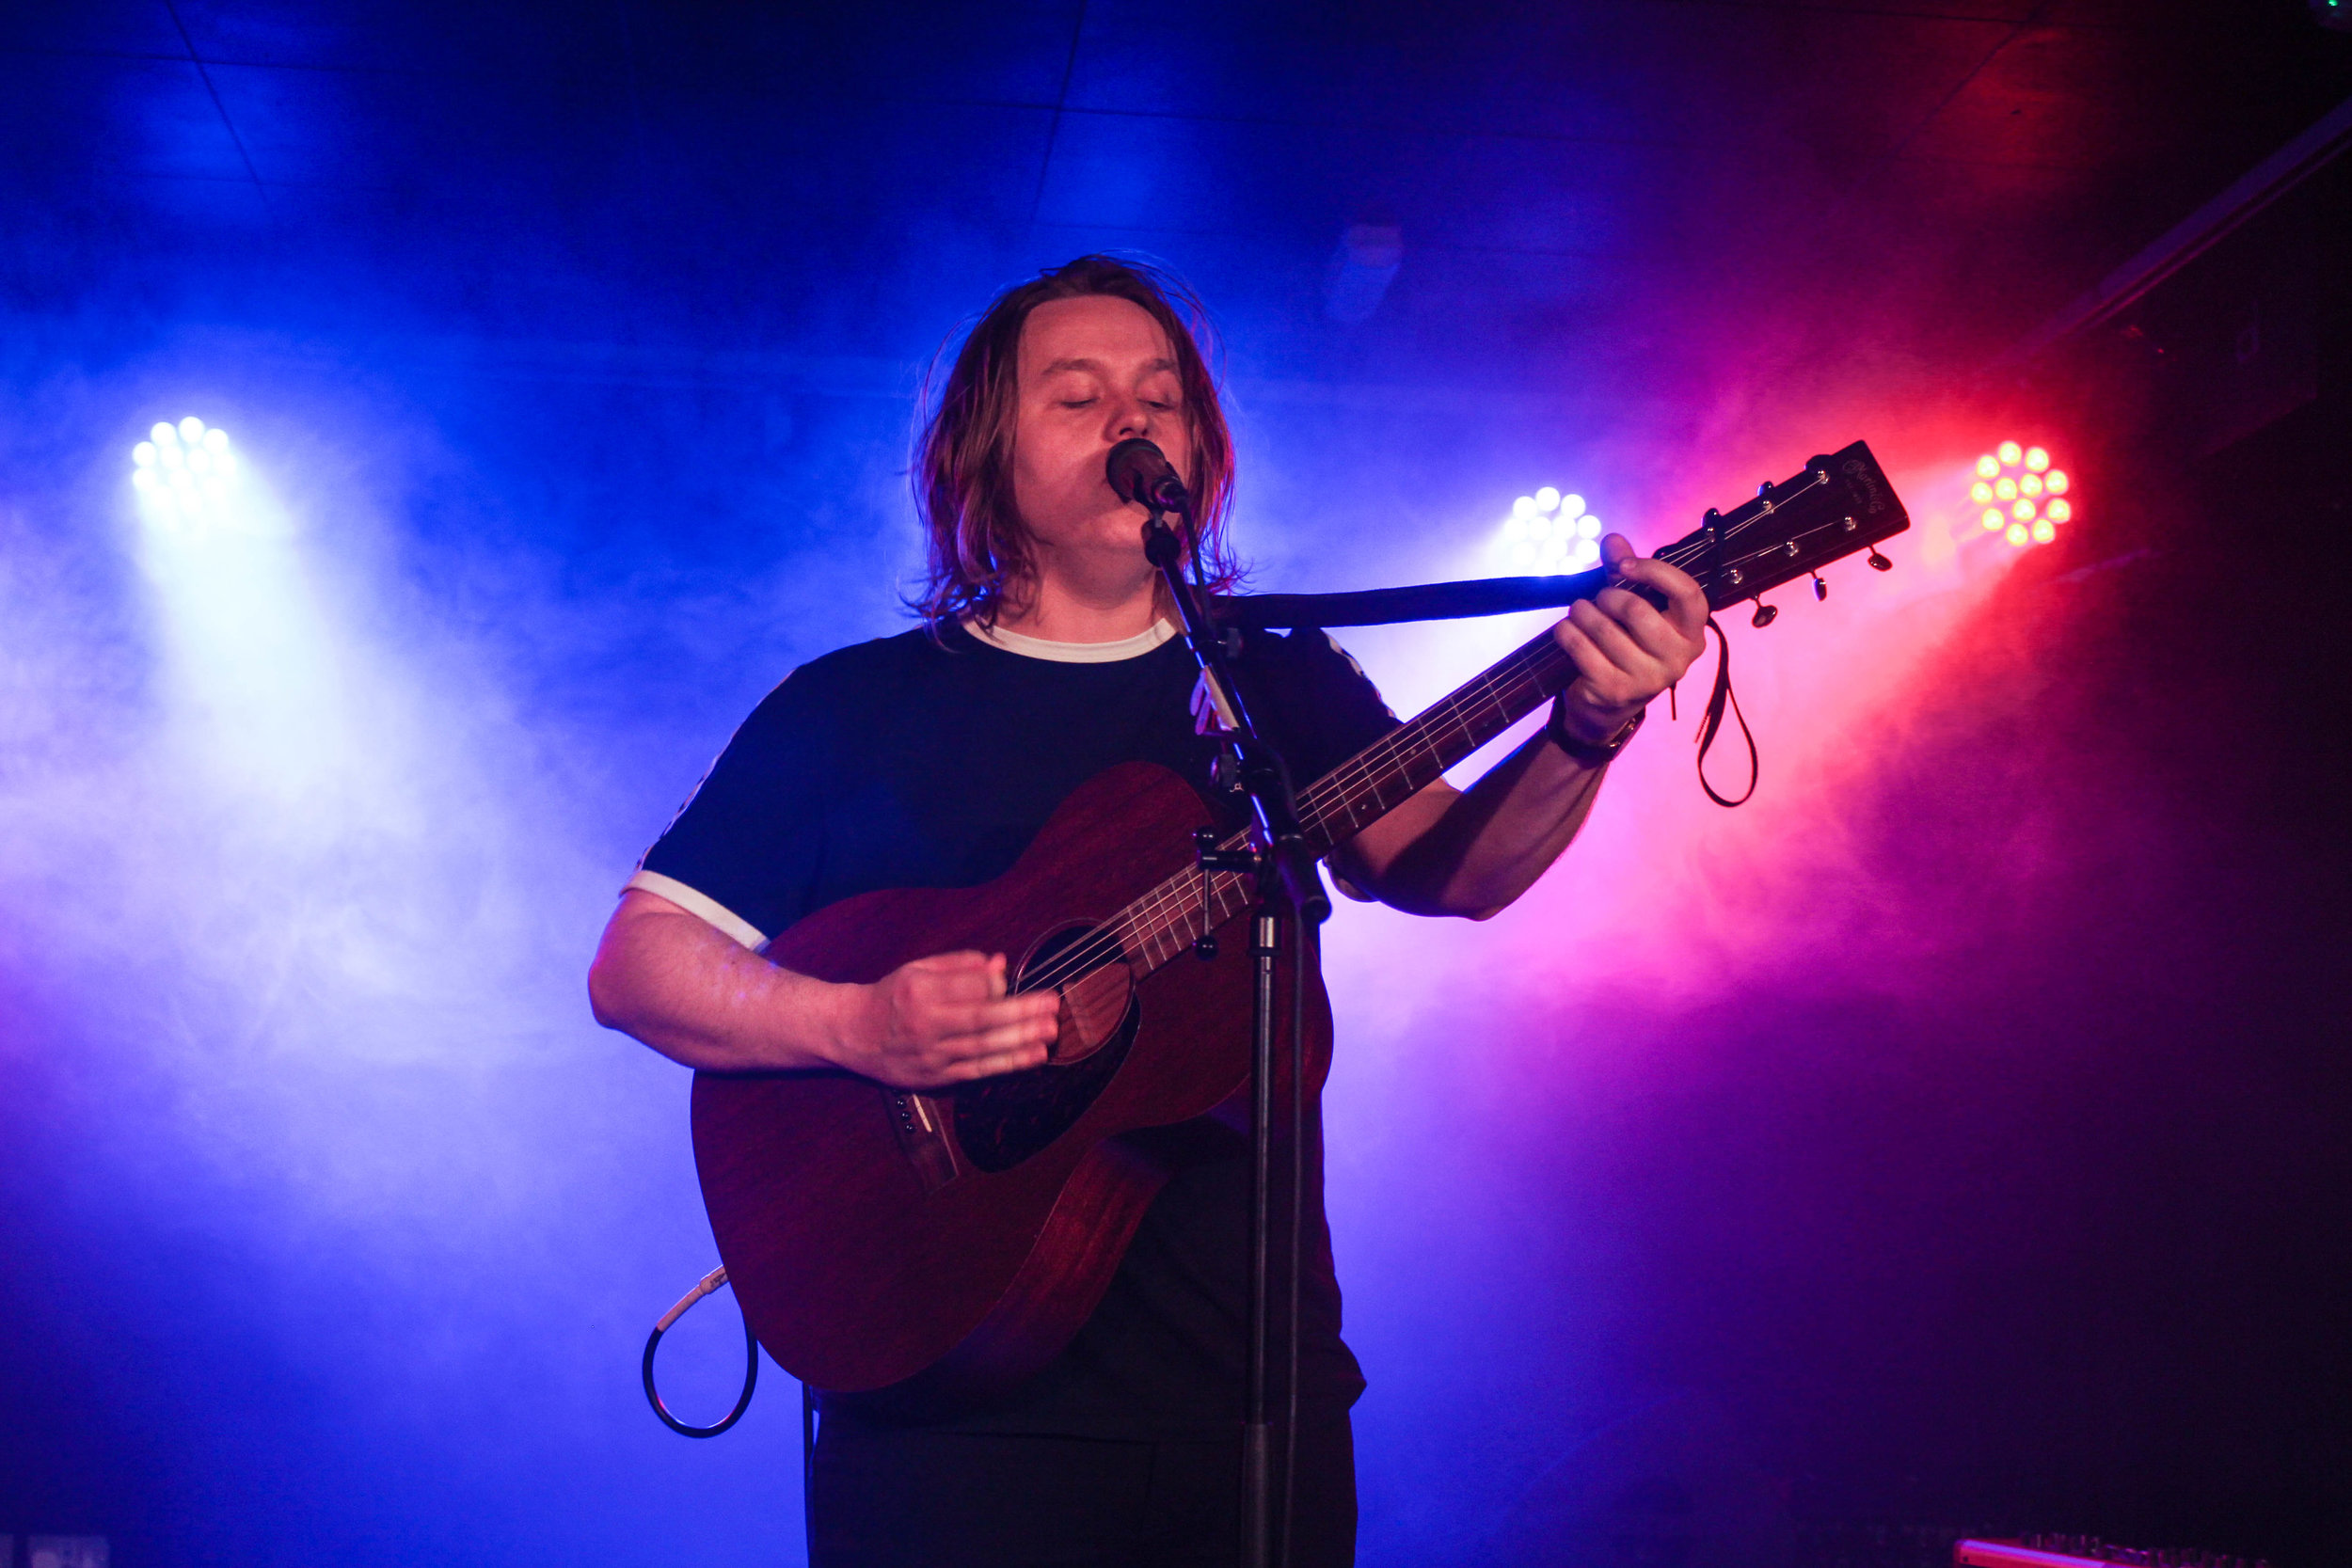 Lewis Capaldi - Photo © Concentus Music